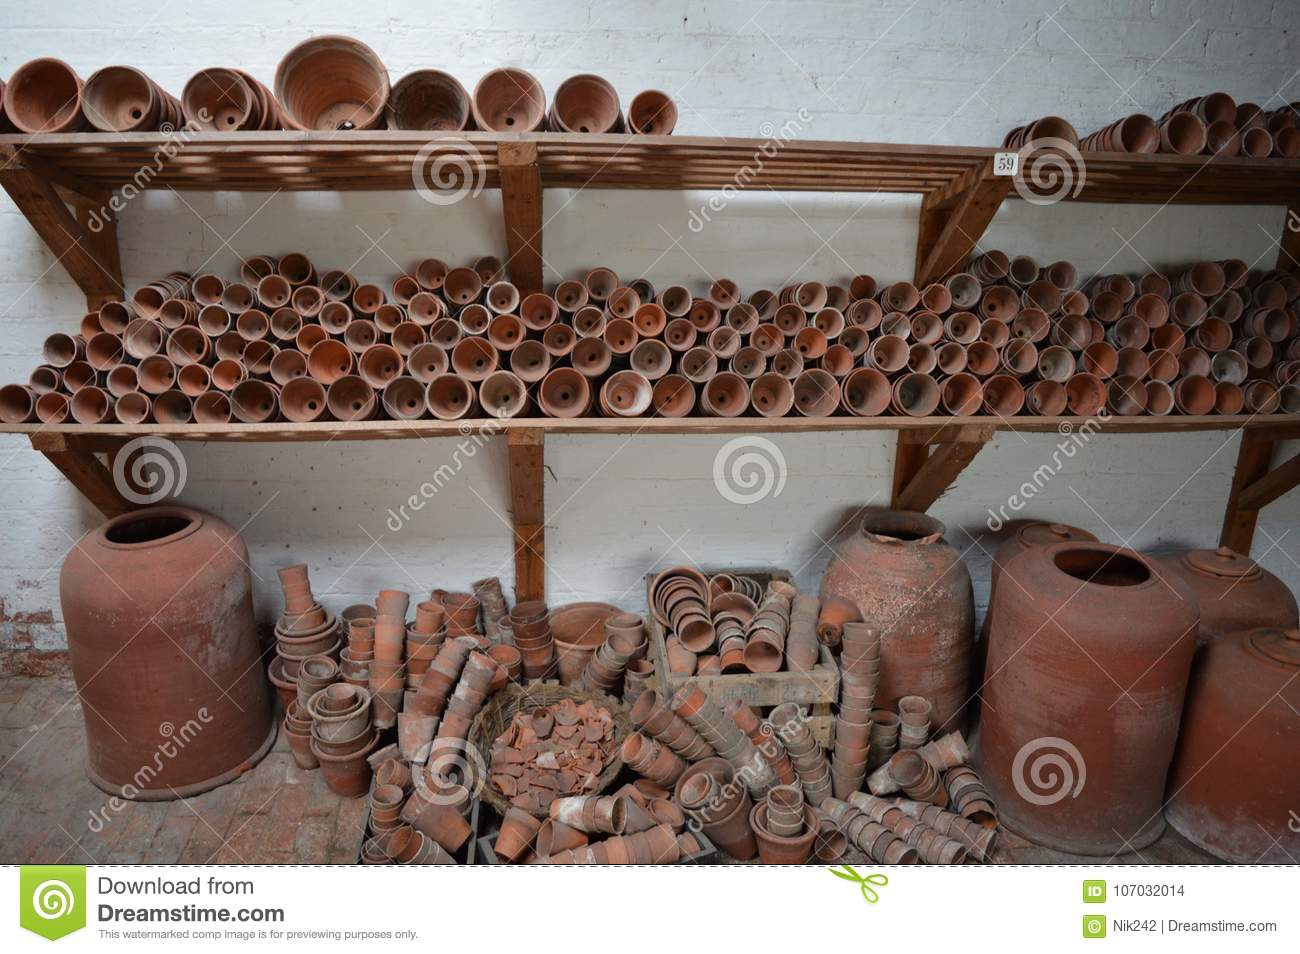 Terracotta Gardening Pots Stacked On Shelves